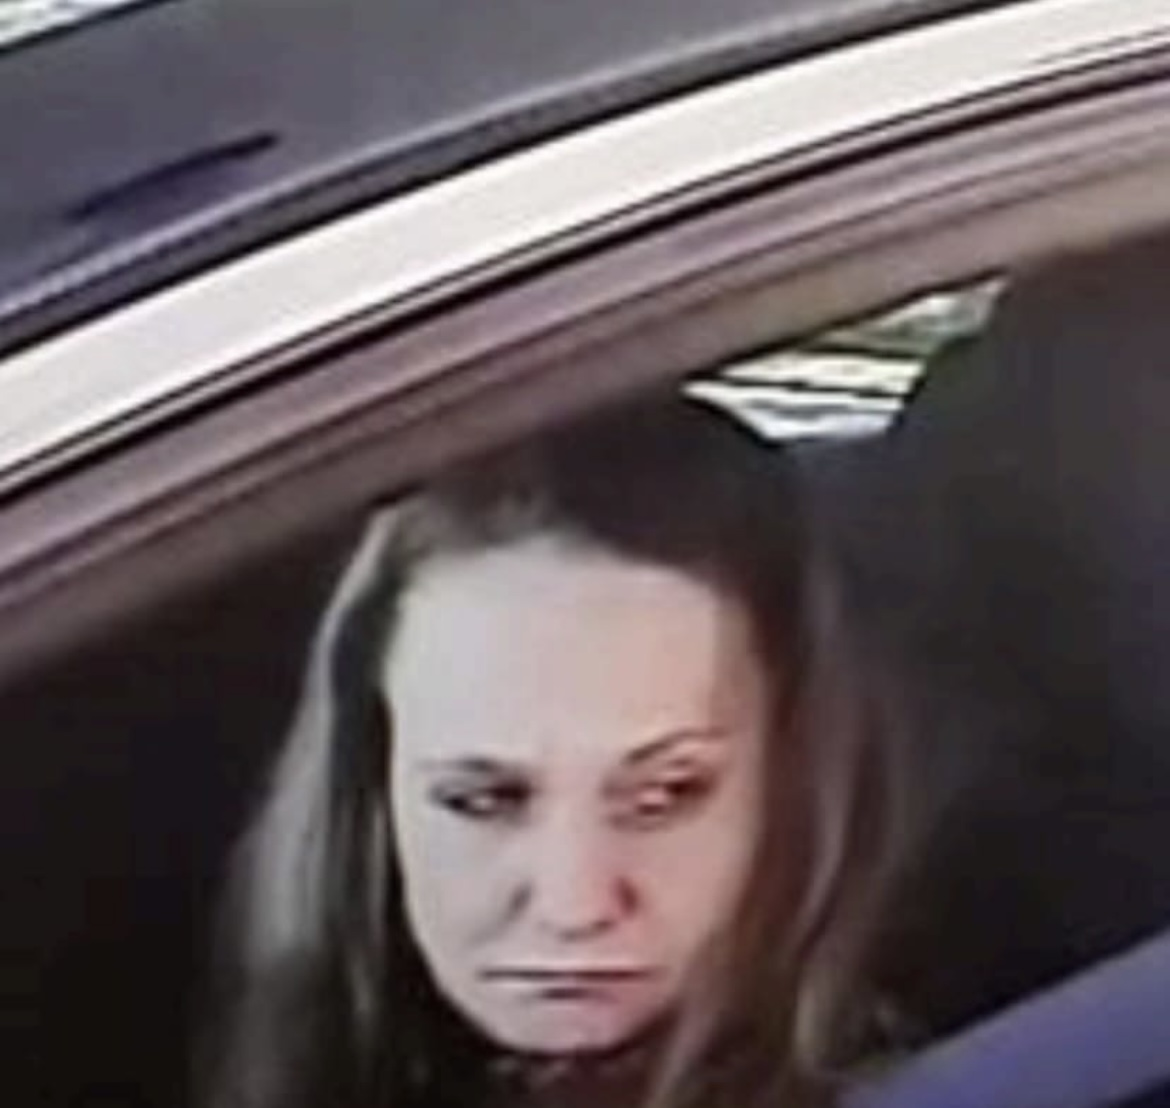 A photo of a woman being sought by Brick police as part of an investigation, May 28, 2021. (Photo: Brick Twp. Police)